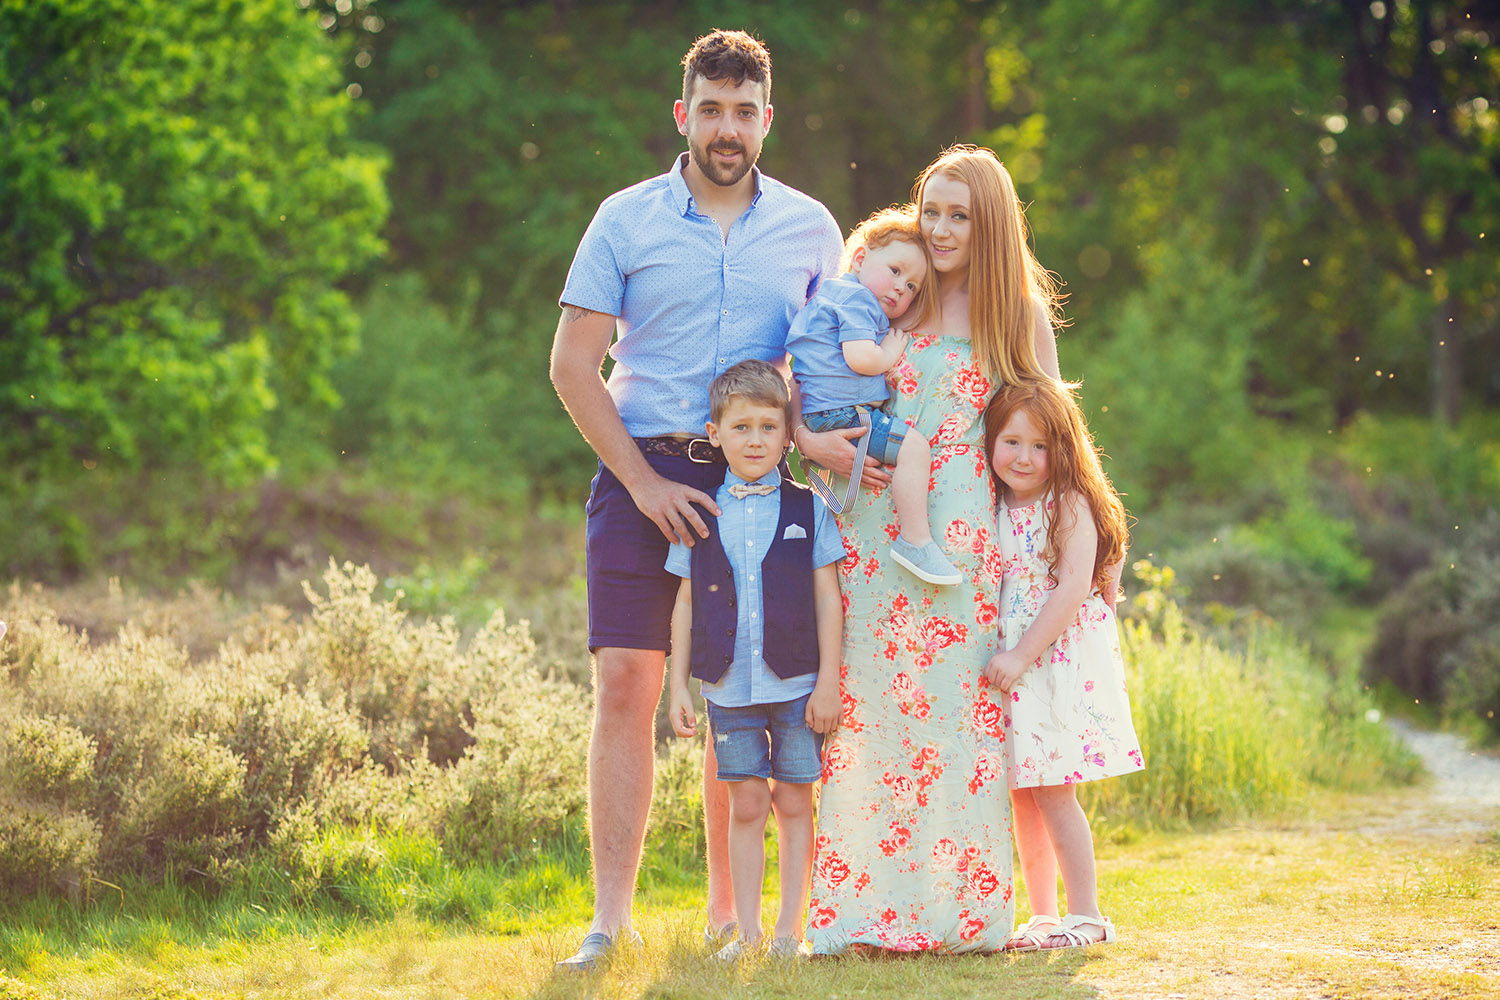 High Wycombe Outdoor Family Photographer 1.jpg